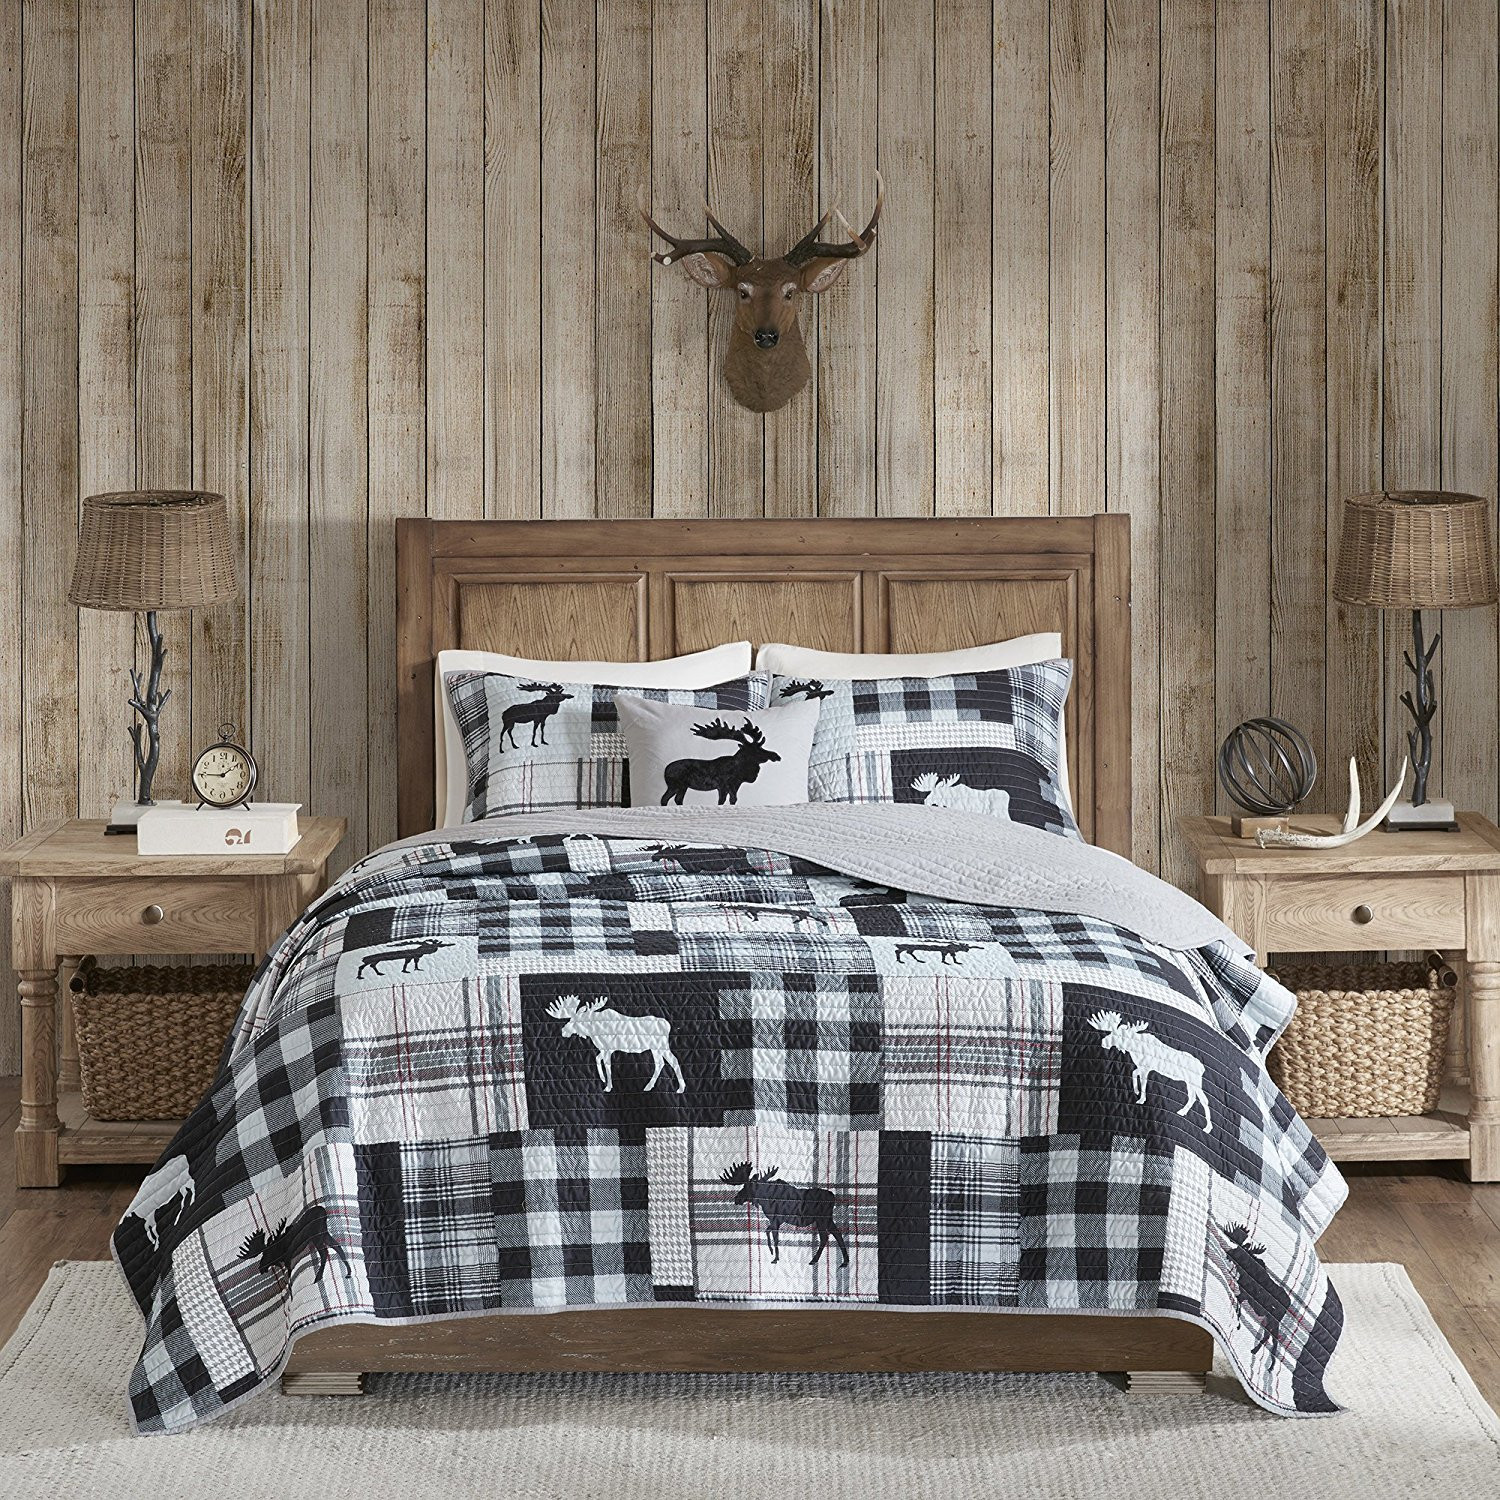 4 Piece Oversized Black Grey White King/ Cal King Quilt Set, Patchwork Pattern Bedding Tartan Plaid Themed Checkered Moose Mountain Winter Cozy Stylish Cabin Lodge Cottage Warm Animal Gray, Polyester